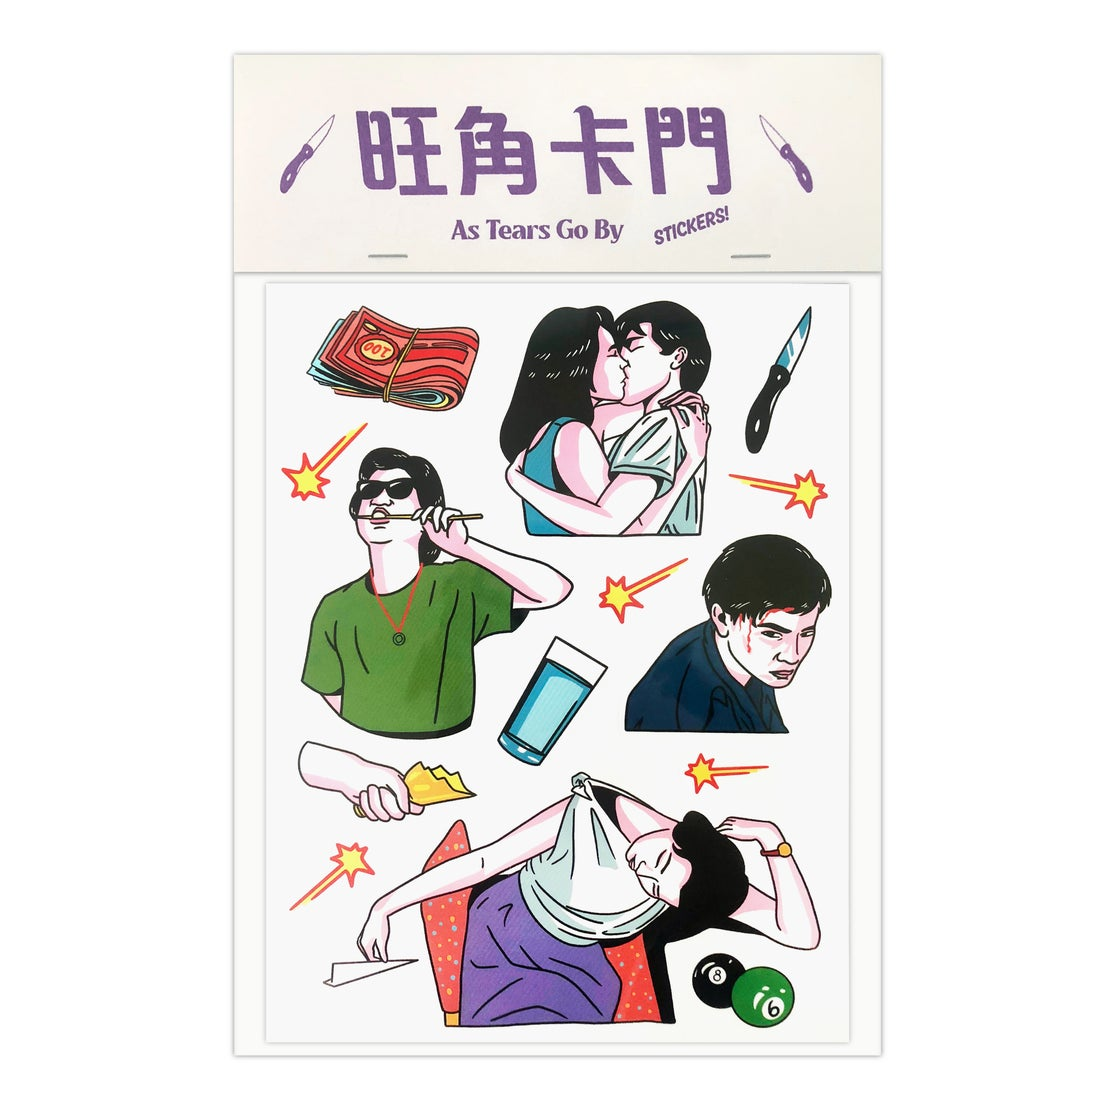 Image of As Tears Go By sticker pack by K&N for Asian Film Archive – Retrospective: Wong Kar Wai